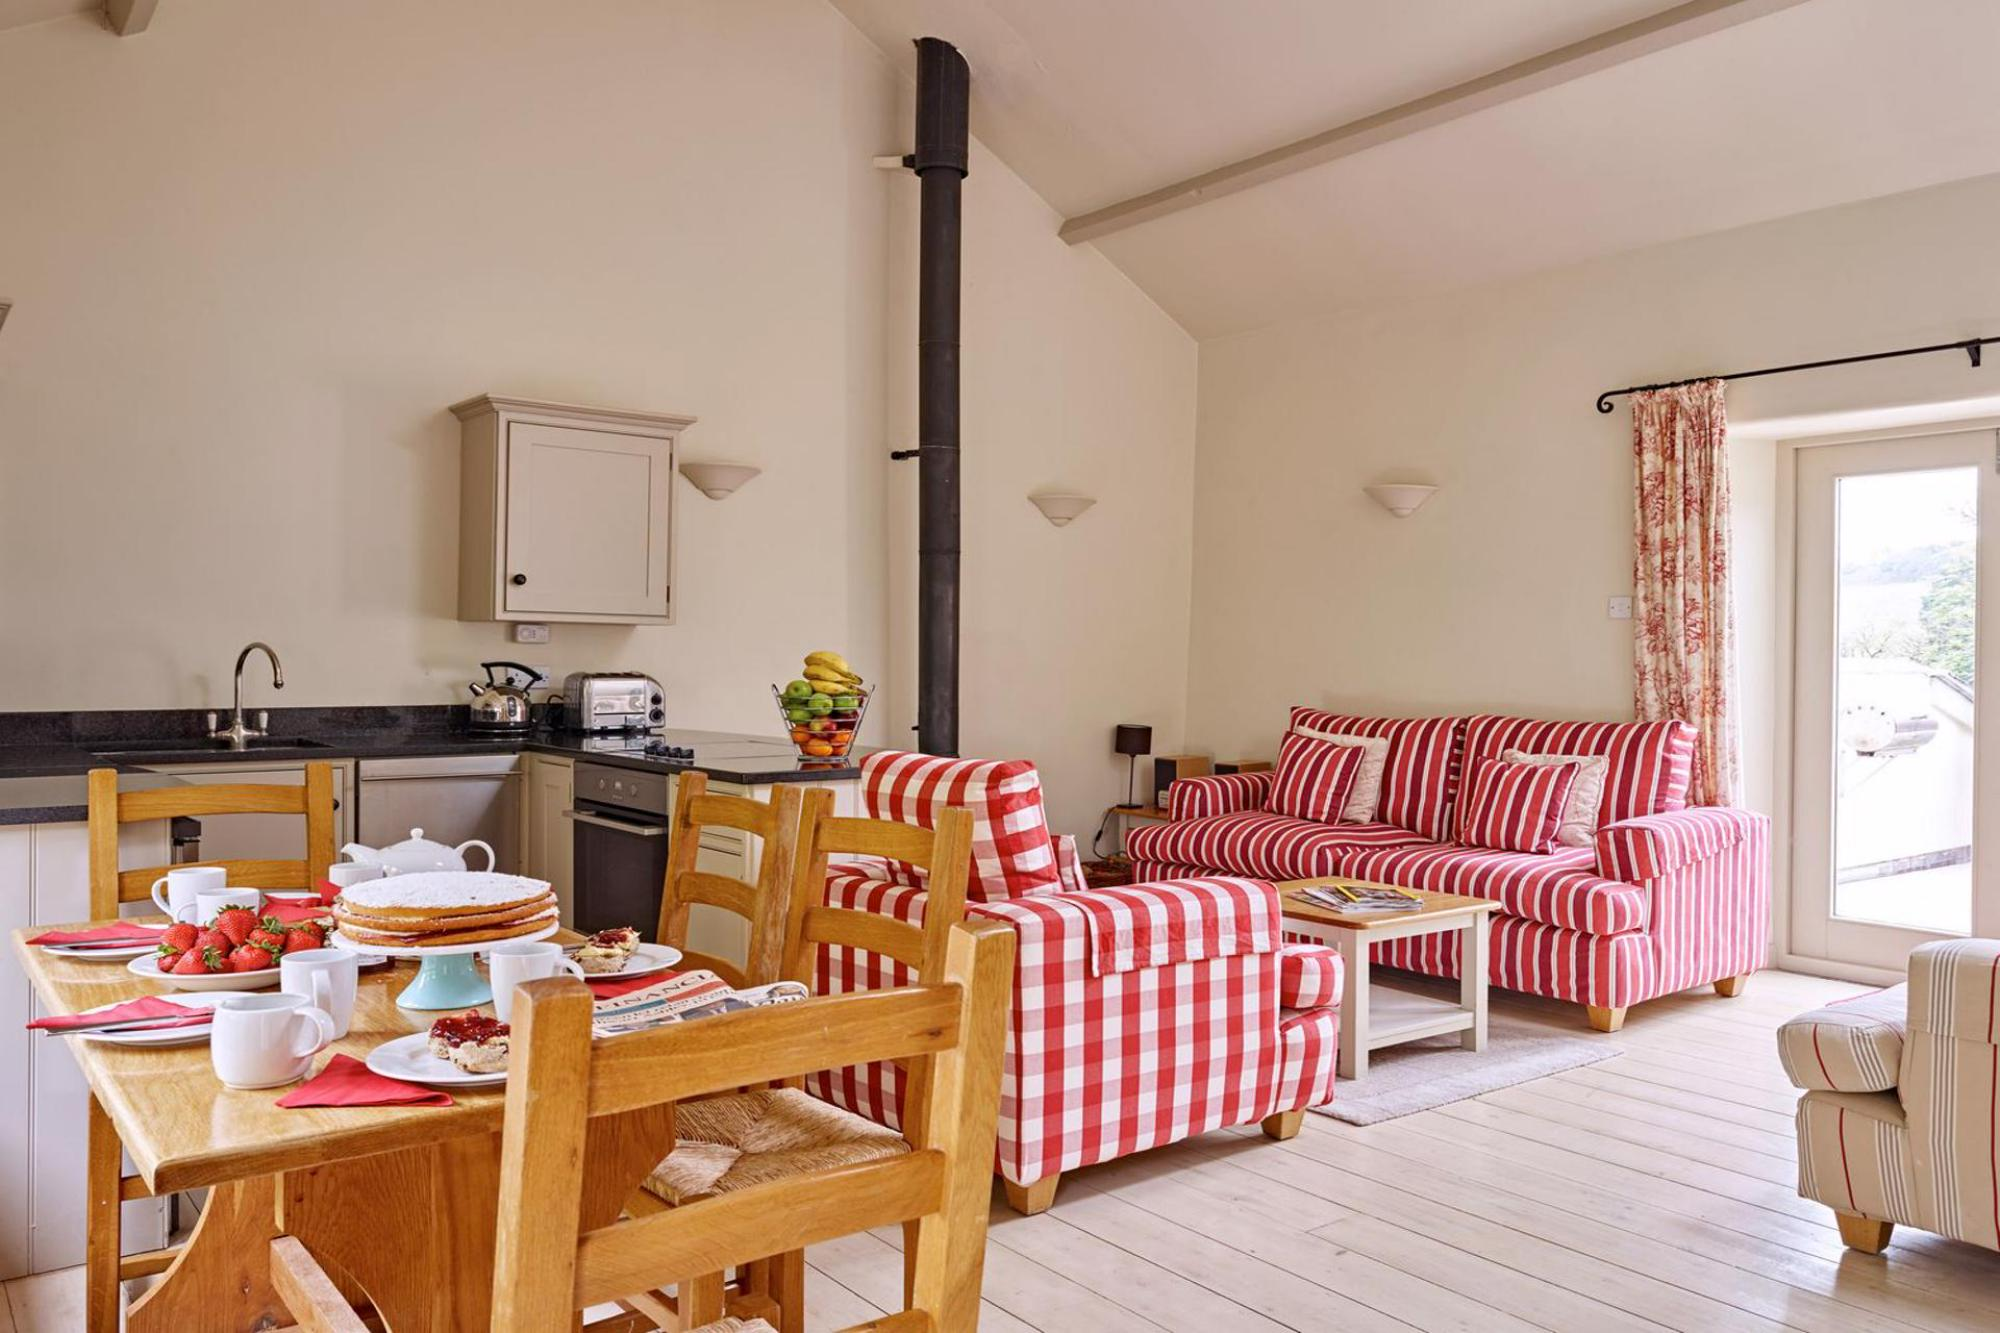 Self-Catering in Totnes holidays at Cool Places